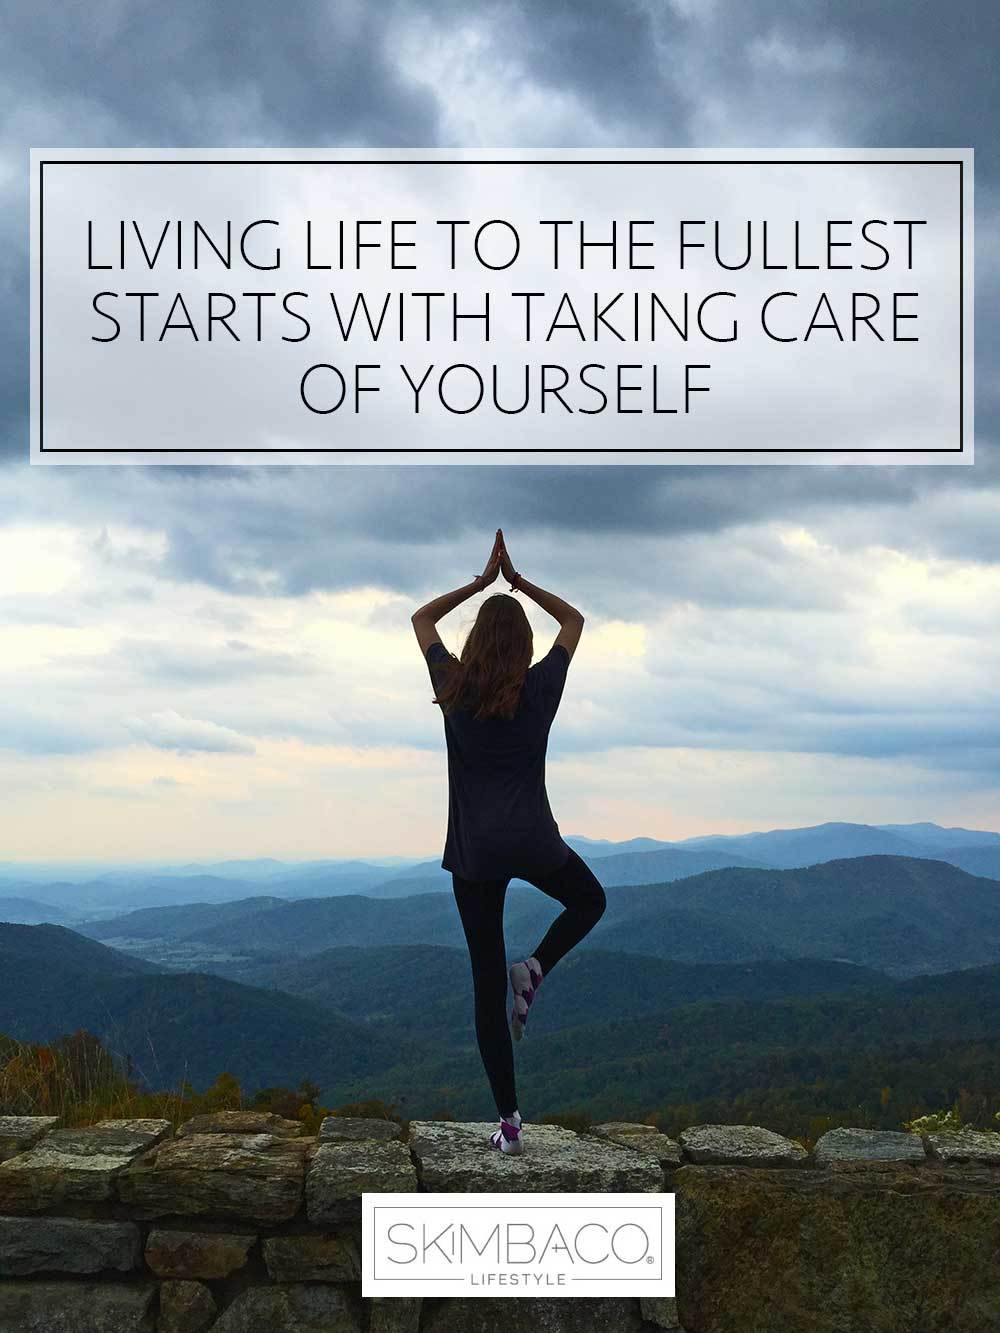 Living life to the fullest starts with taking care your yourself